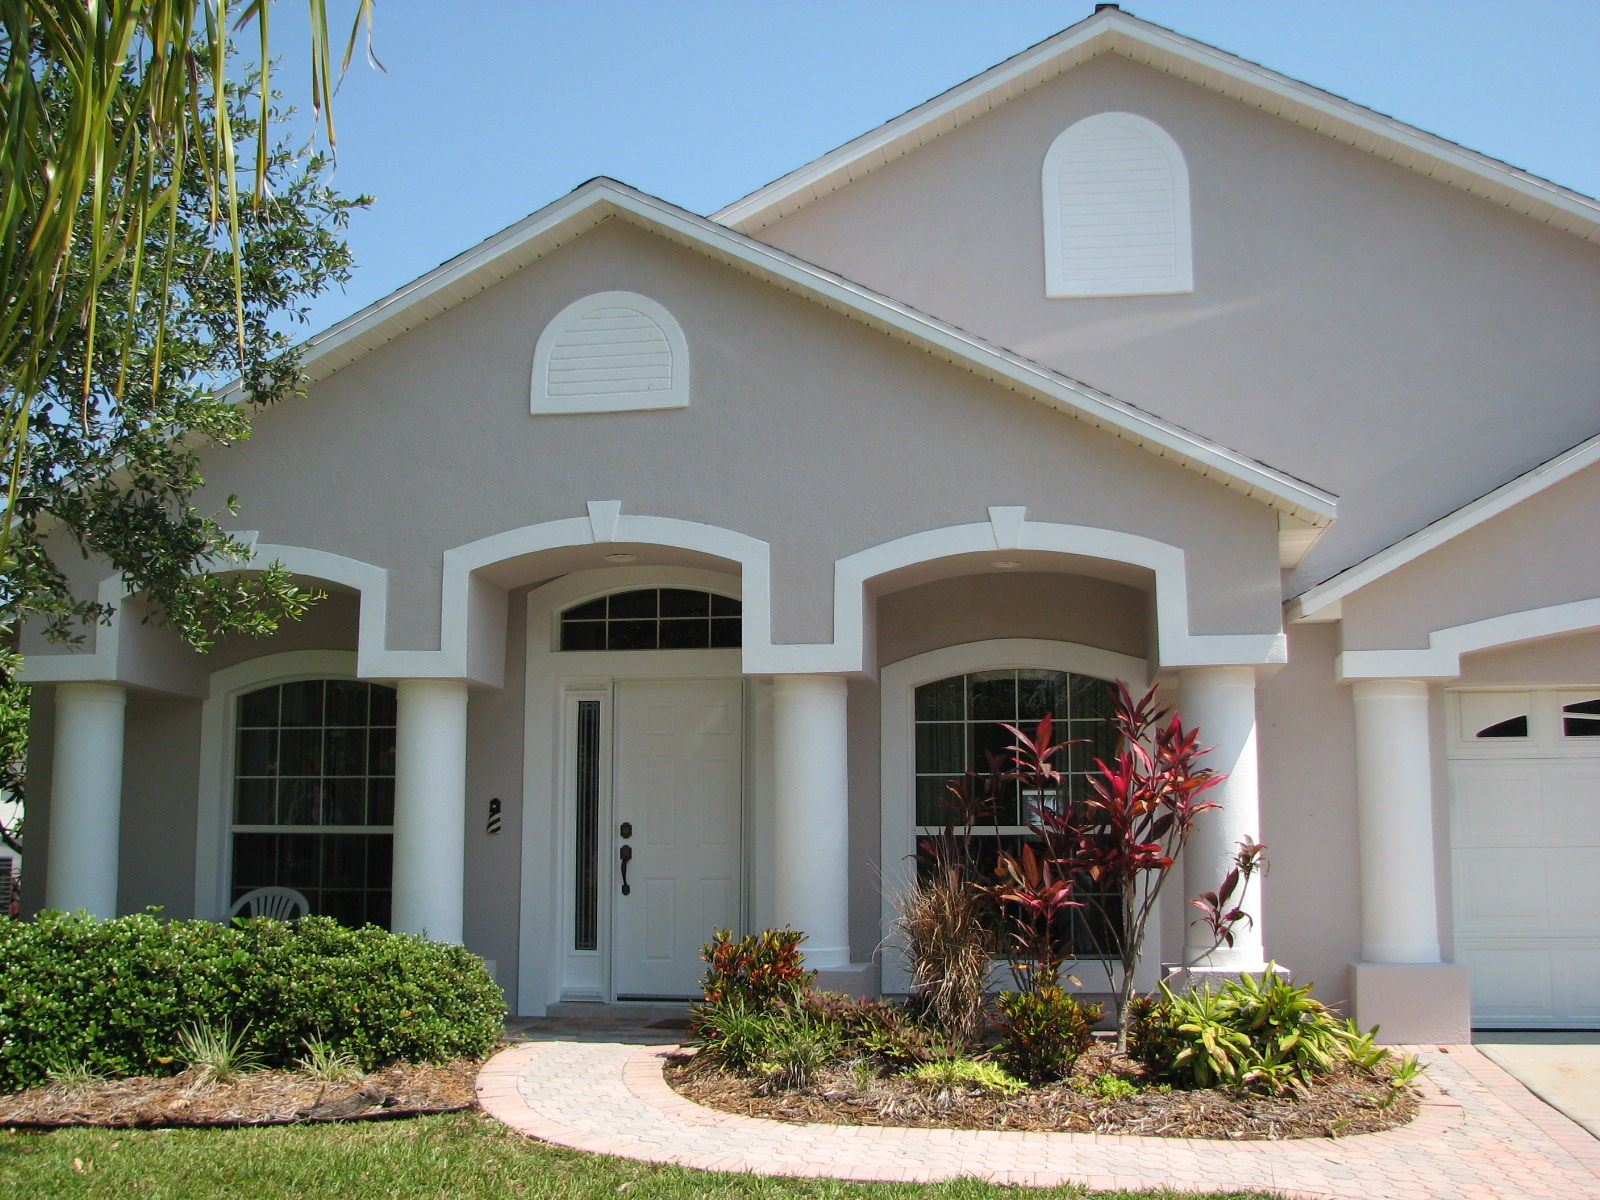 Stucco repair melbourne fl stucco cracks bulging stucco - Painting a stucco house exterior ...